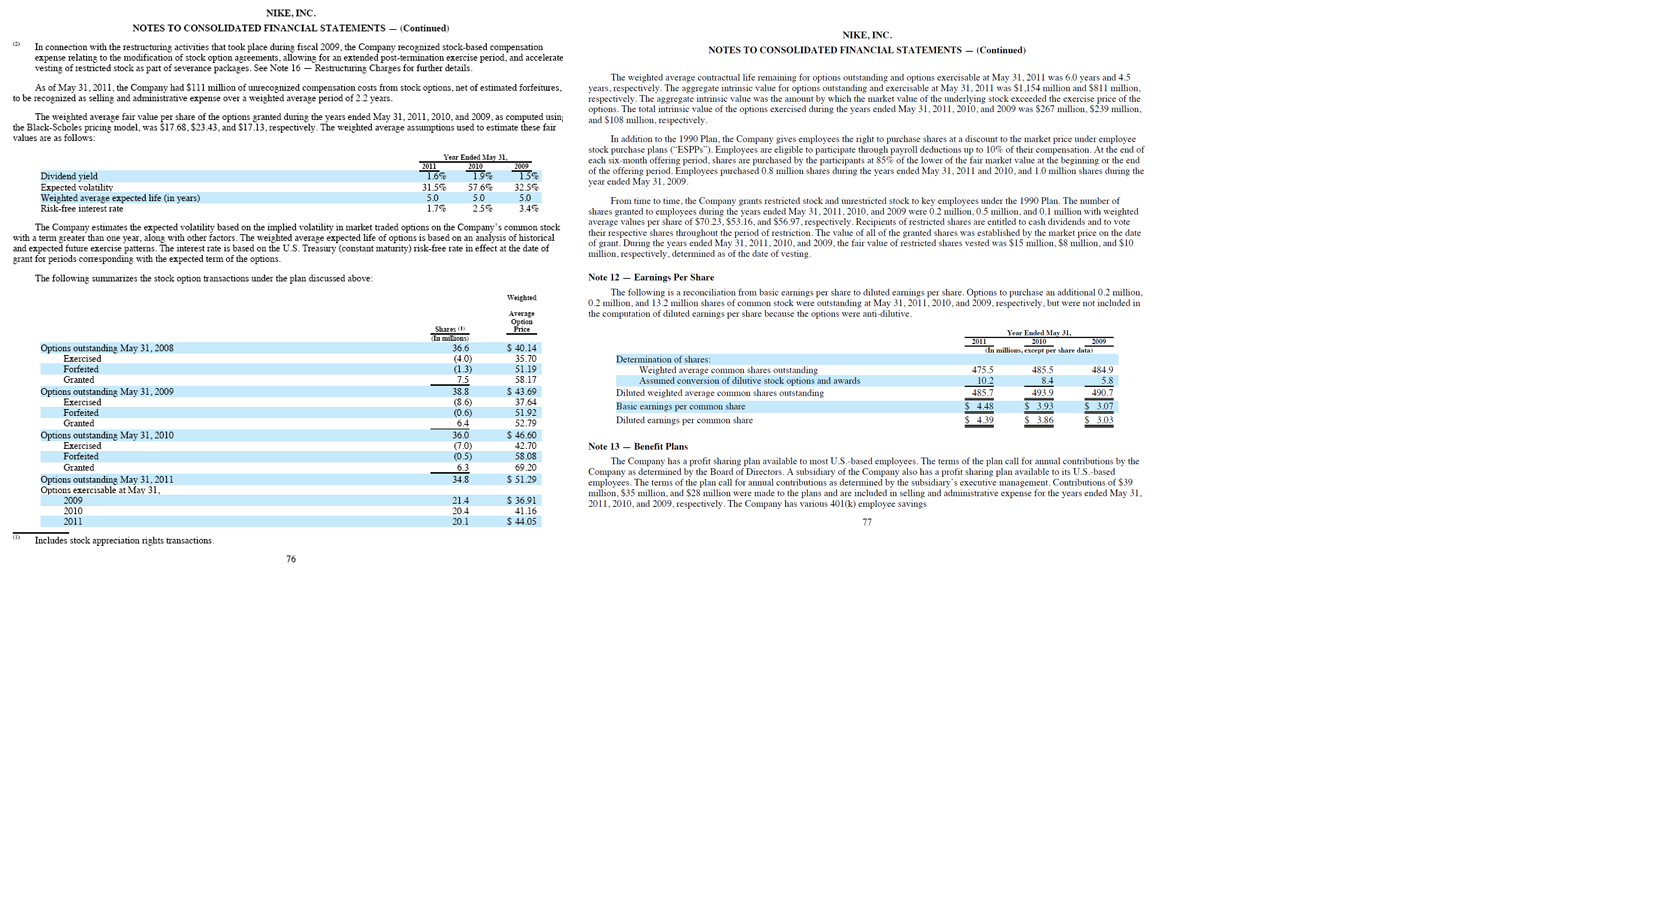 Financial reporting problem part 2 nike